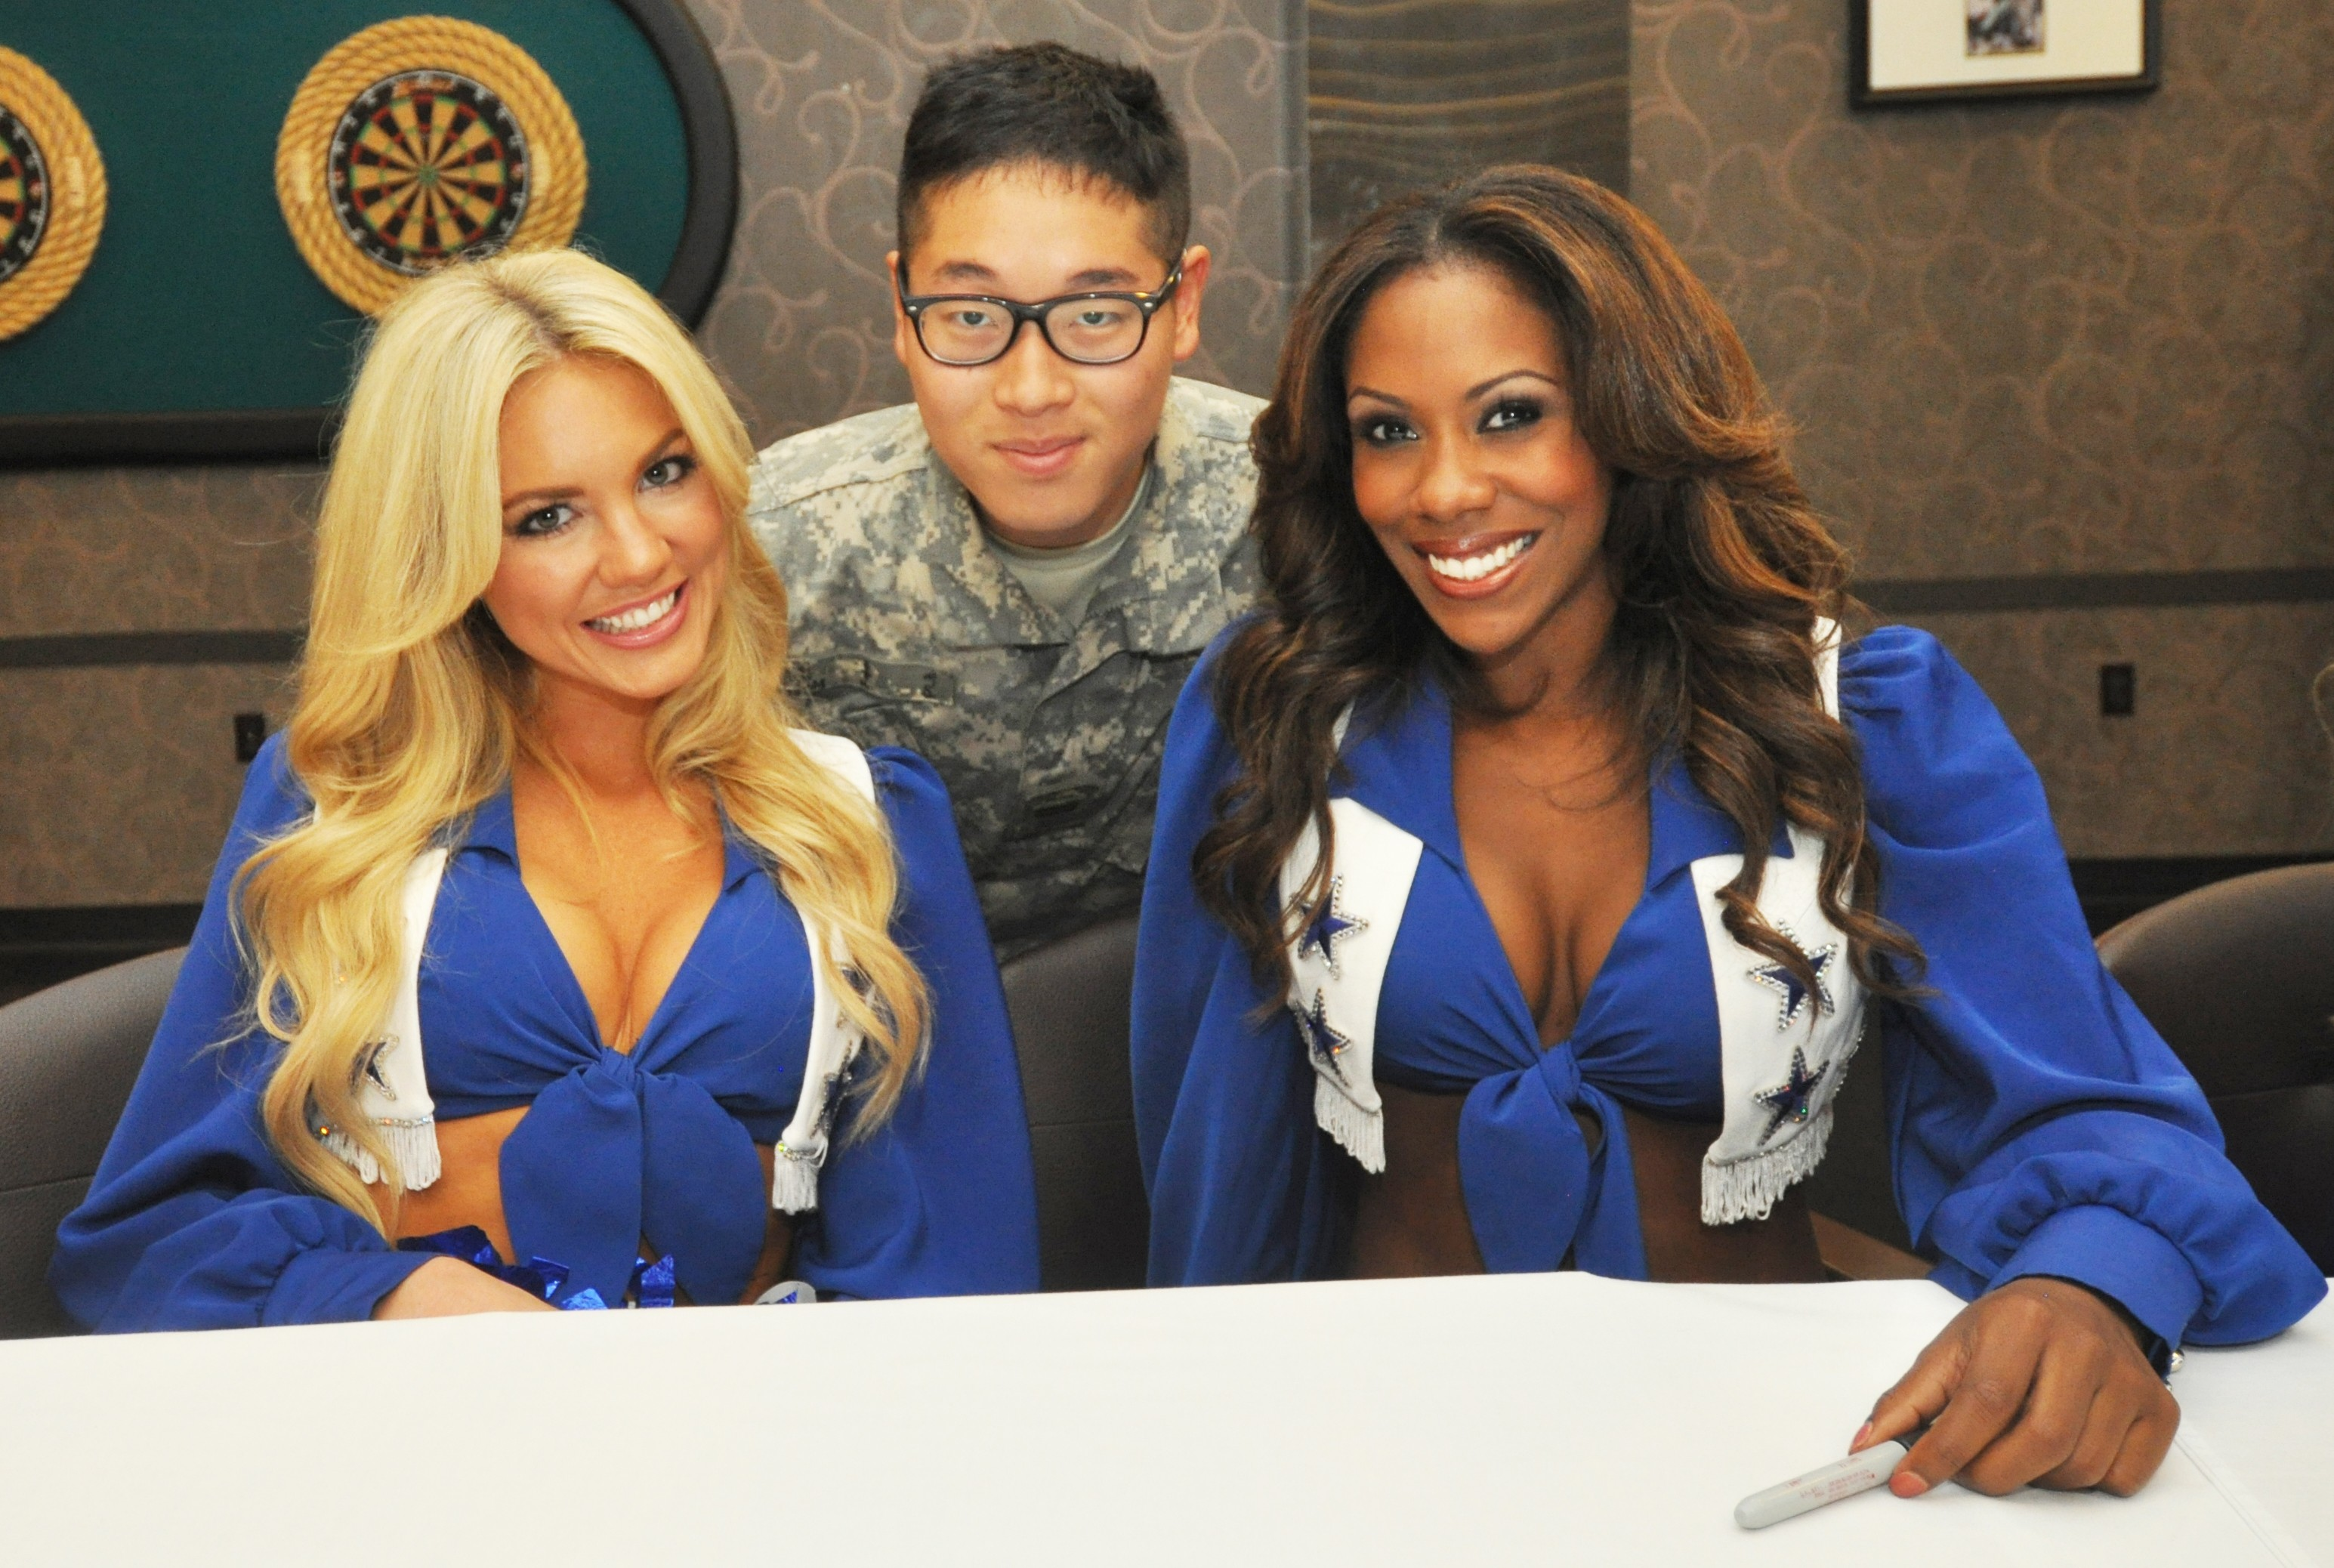 Dallas cowboys cheerleaders thank yongsan troops article the original m4hsunfo